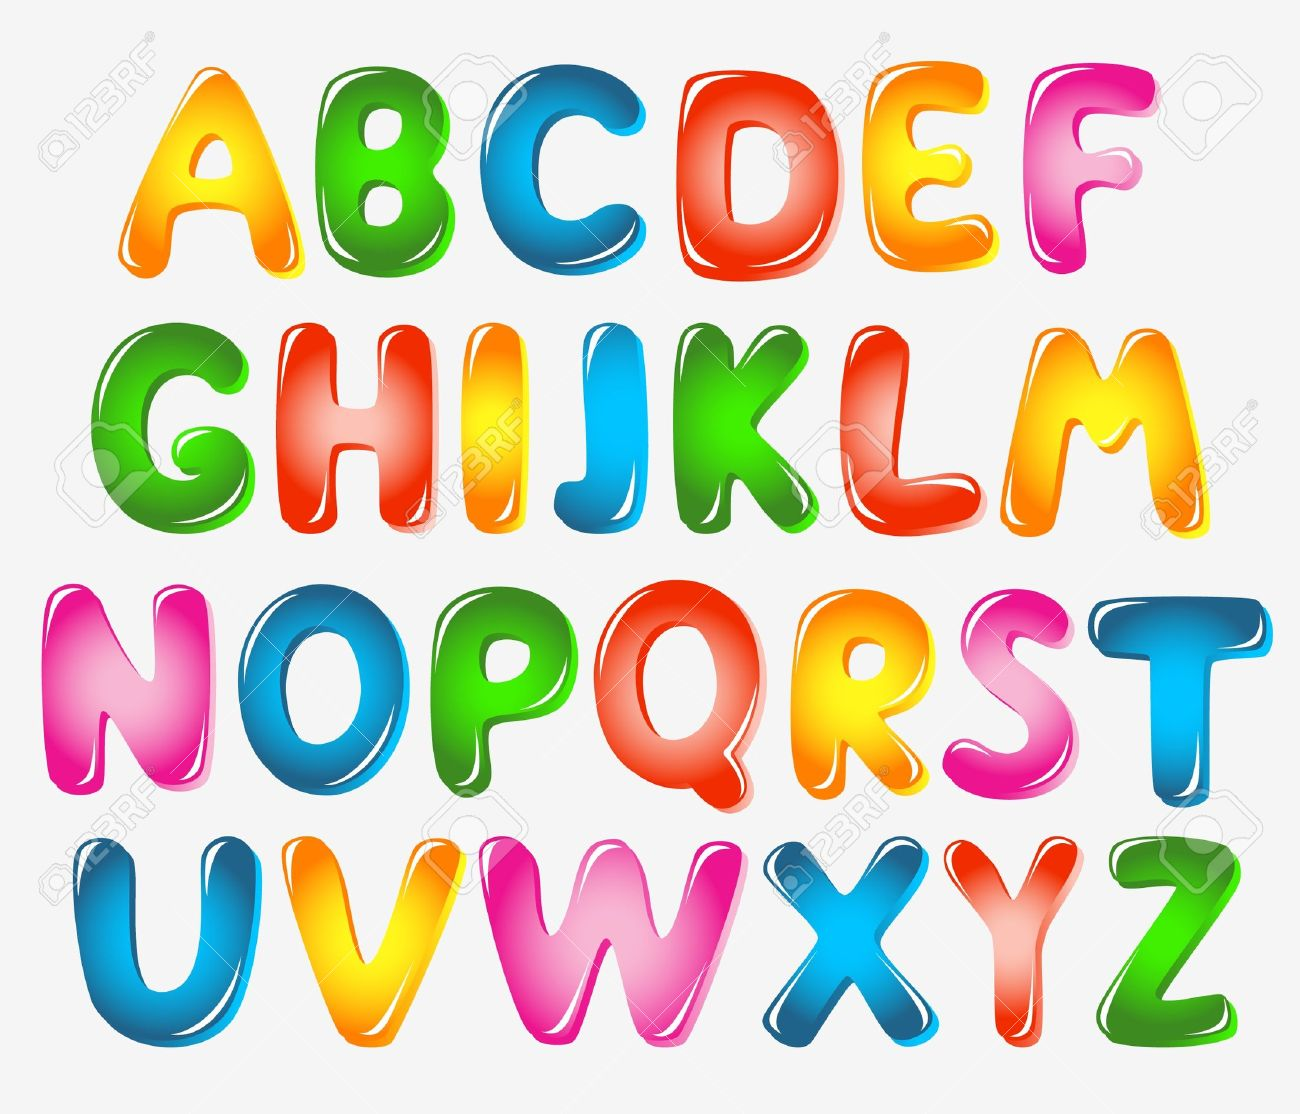 Alphabet Letters Royalty Free Cliparts, Vectors, And Stock ...